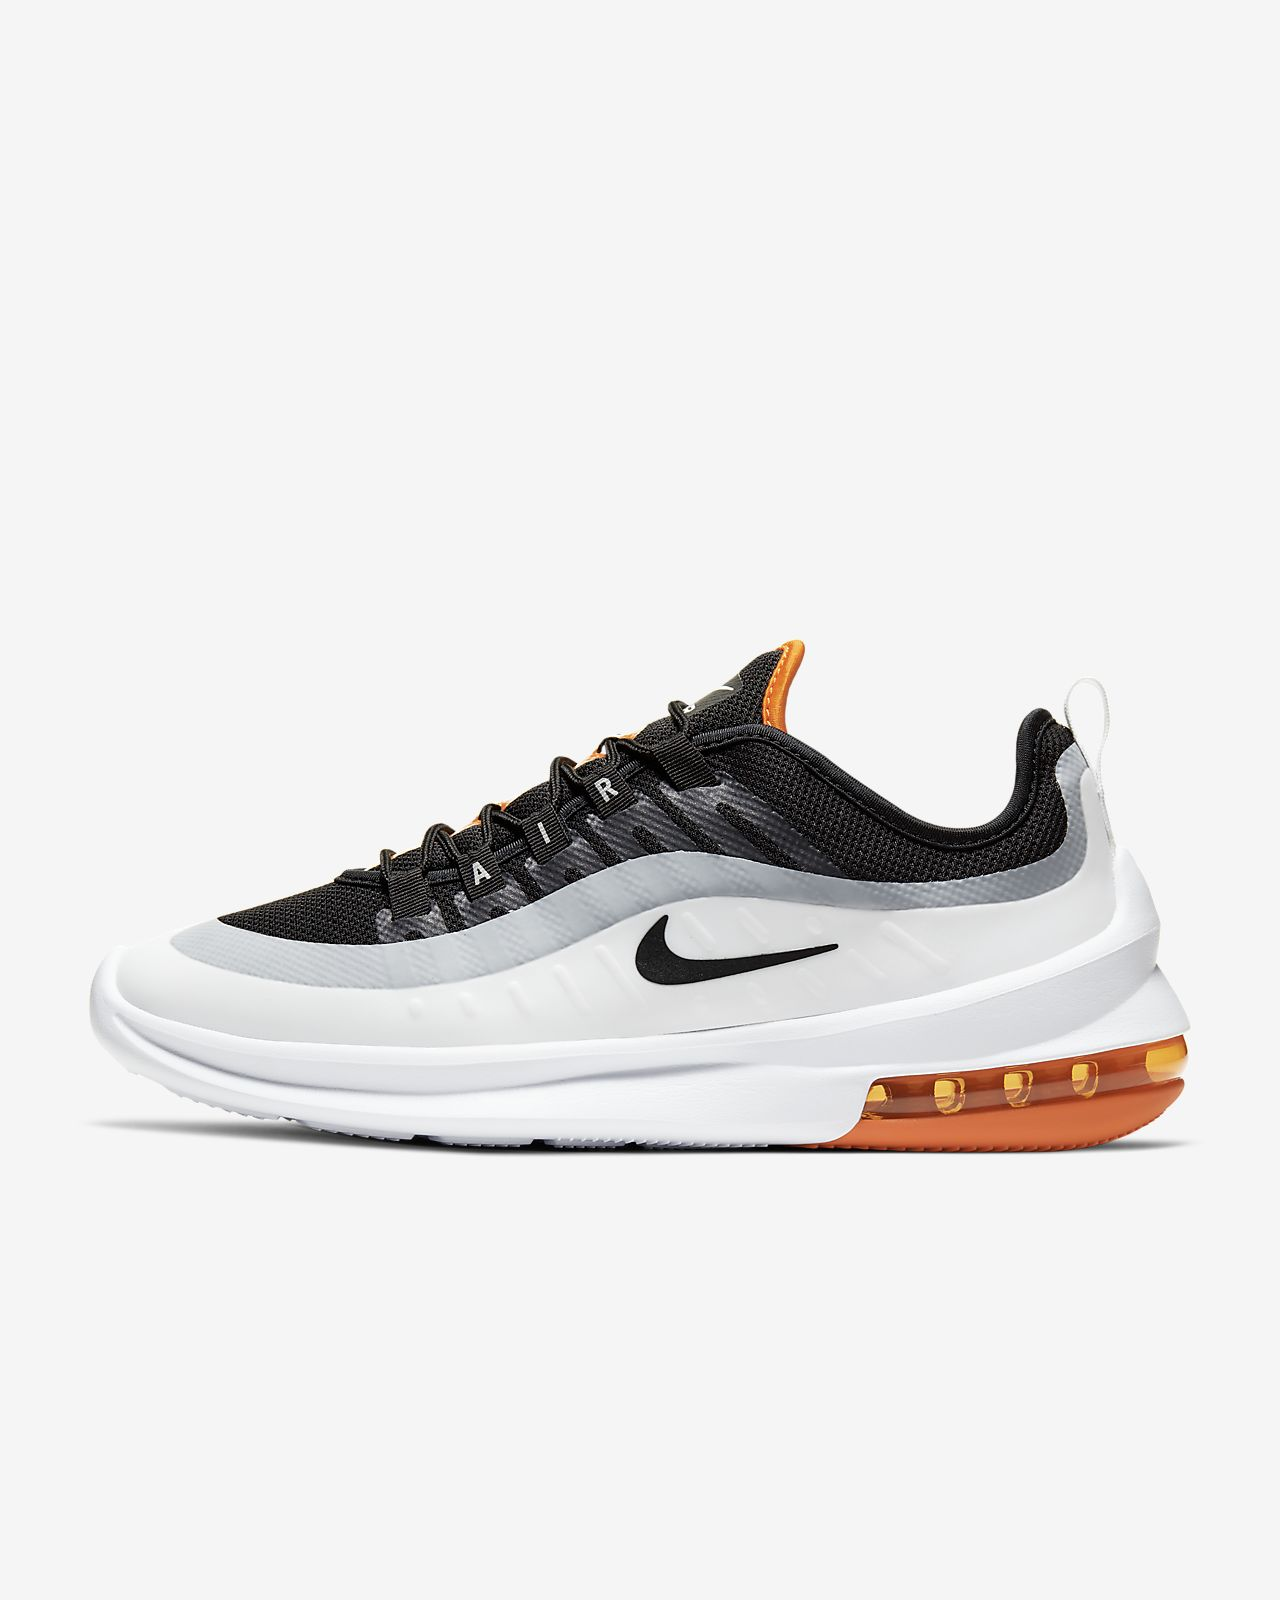 Nike Air Max Axis Men's Shoe